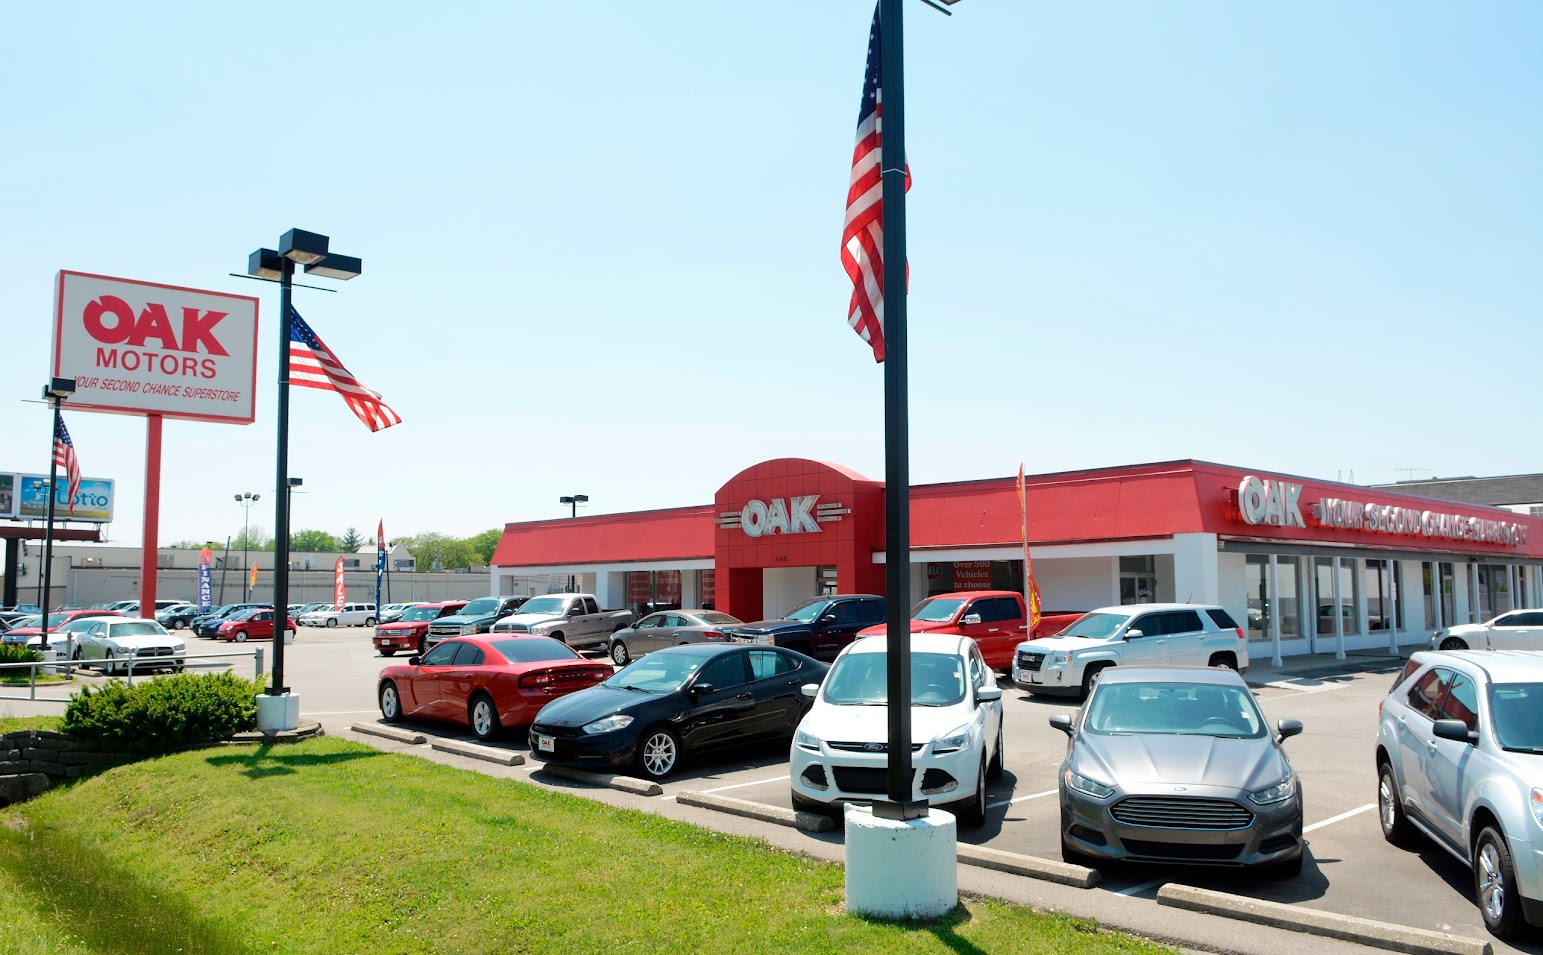 Circle city auto exchange in indianapolis in 46227 for Oak motors shadeland indianapolis